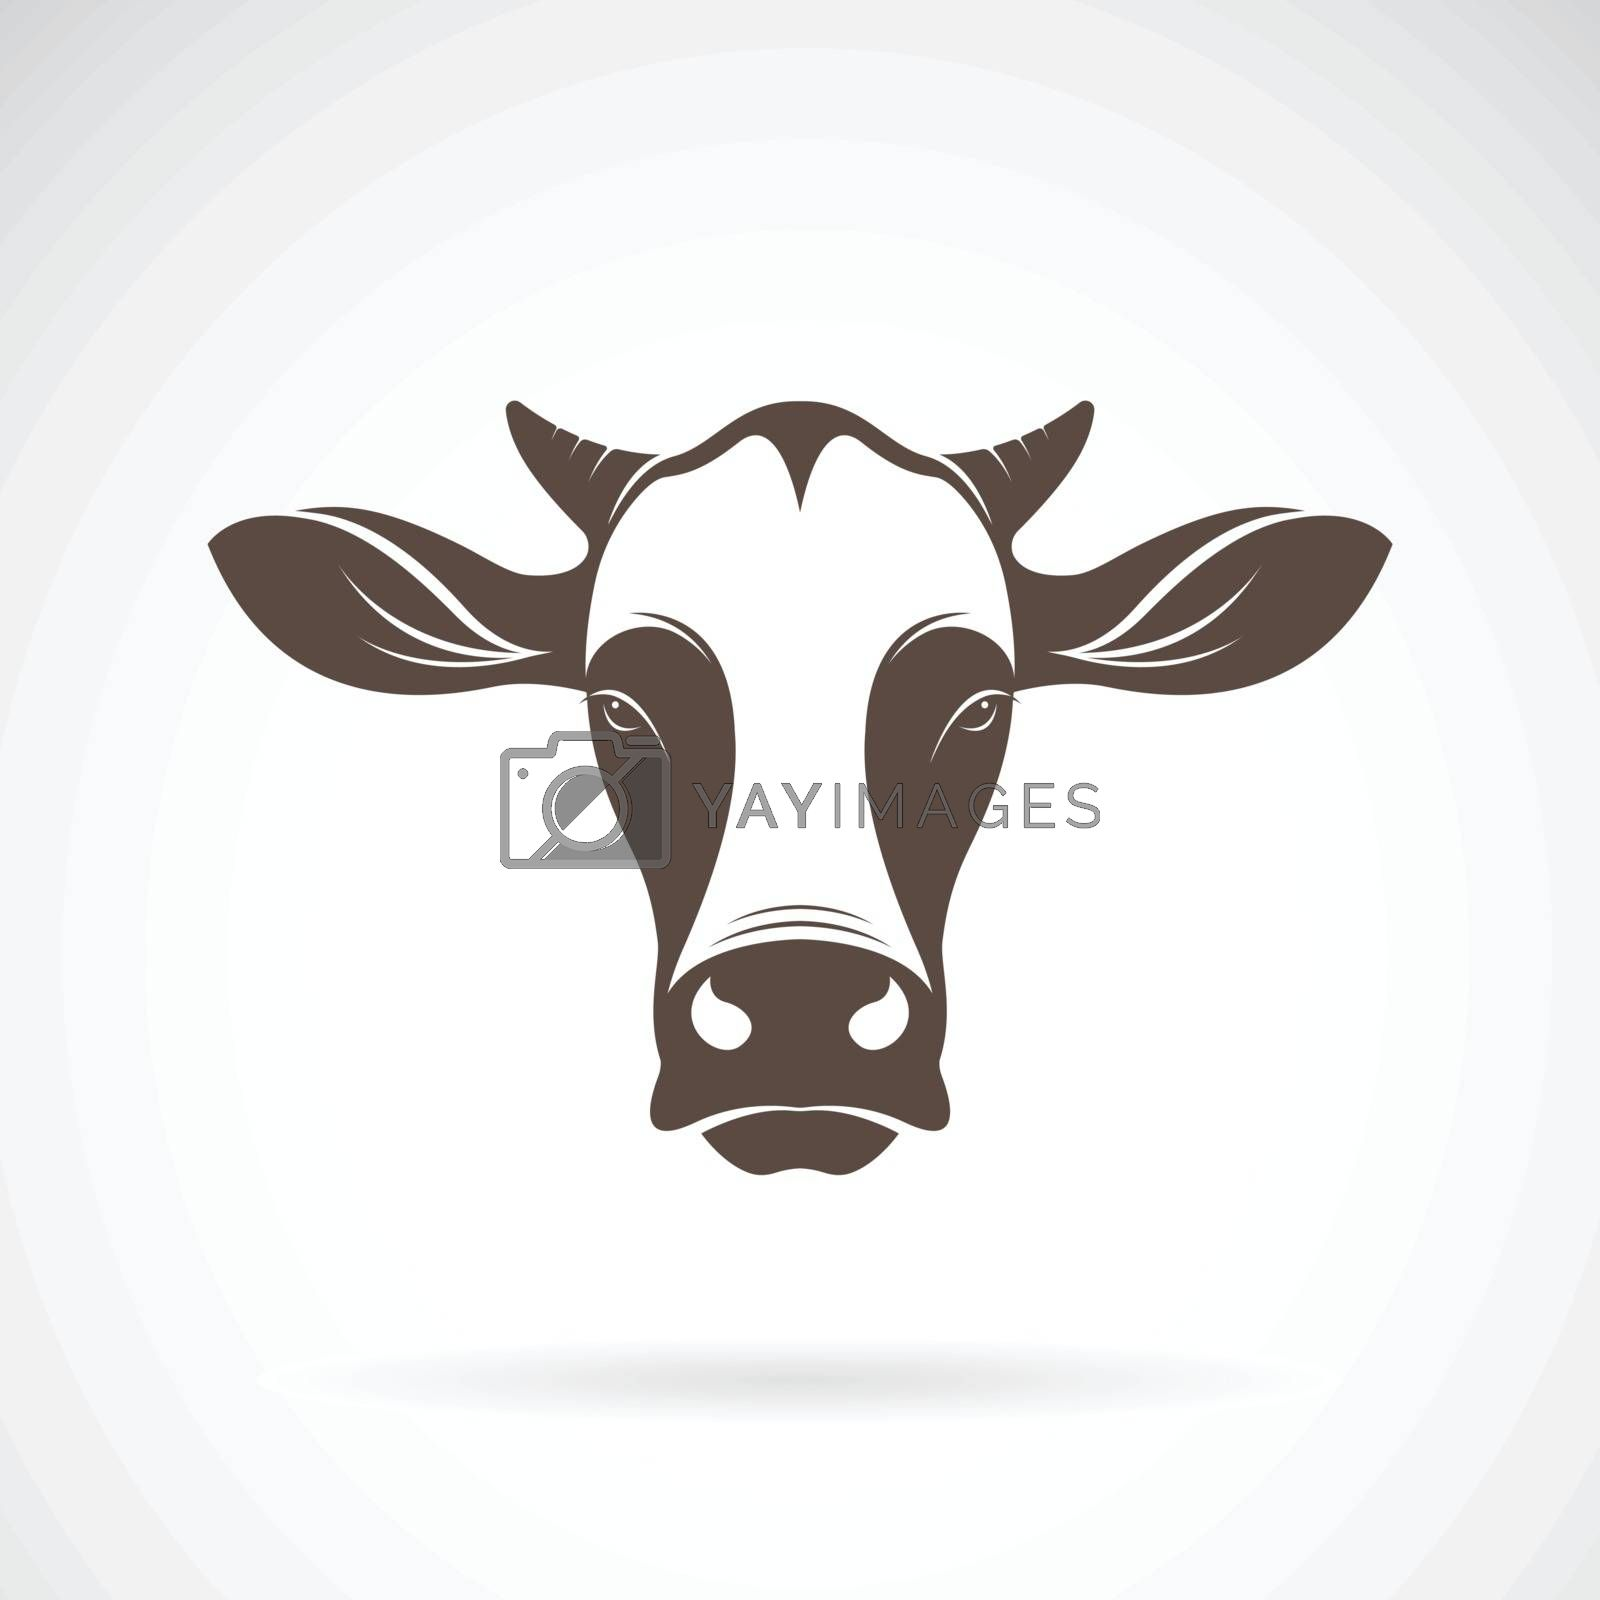 Vector of a cow head design on white background. Farm Animal. Cows logos or icons. Easy editable layered vector illustration.